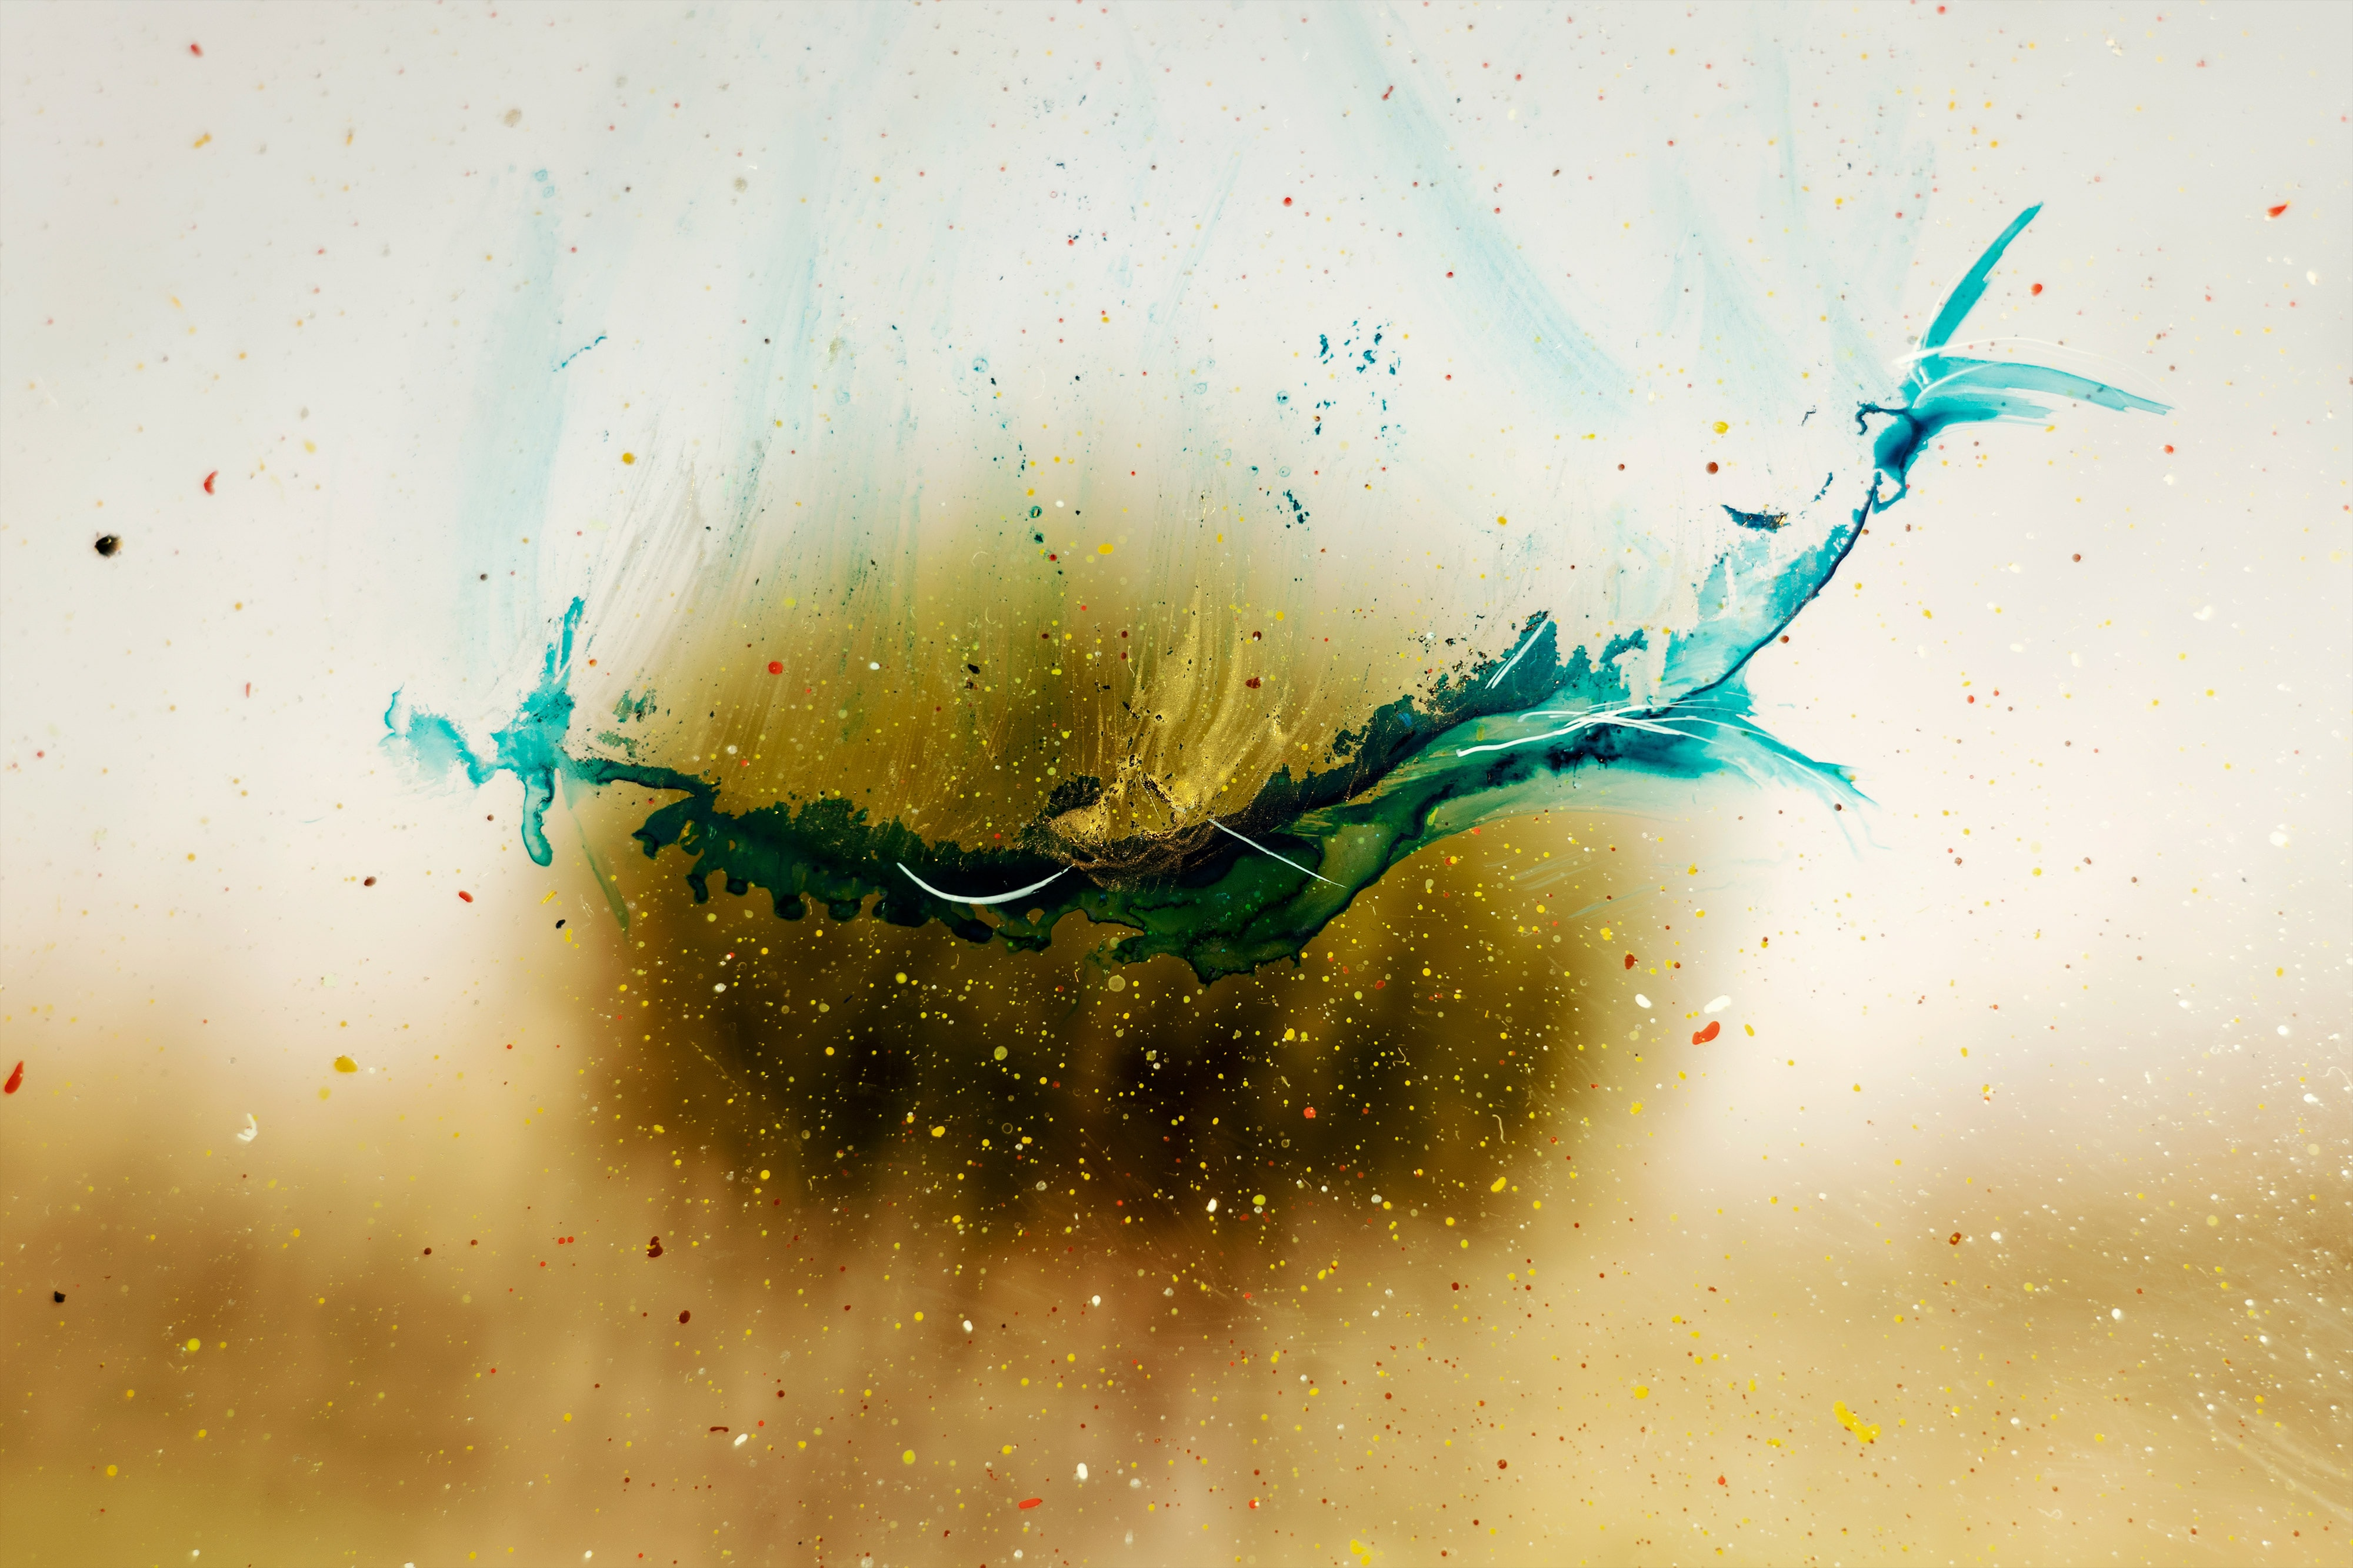 144382 download wallpaper Abstract, Paint, Drops, Divorces, Blur, Smooth screensavers and pictures for free